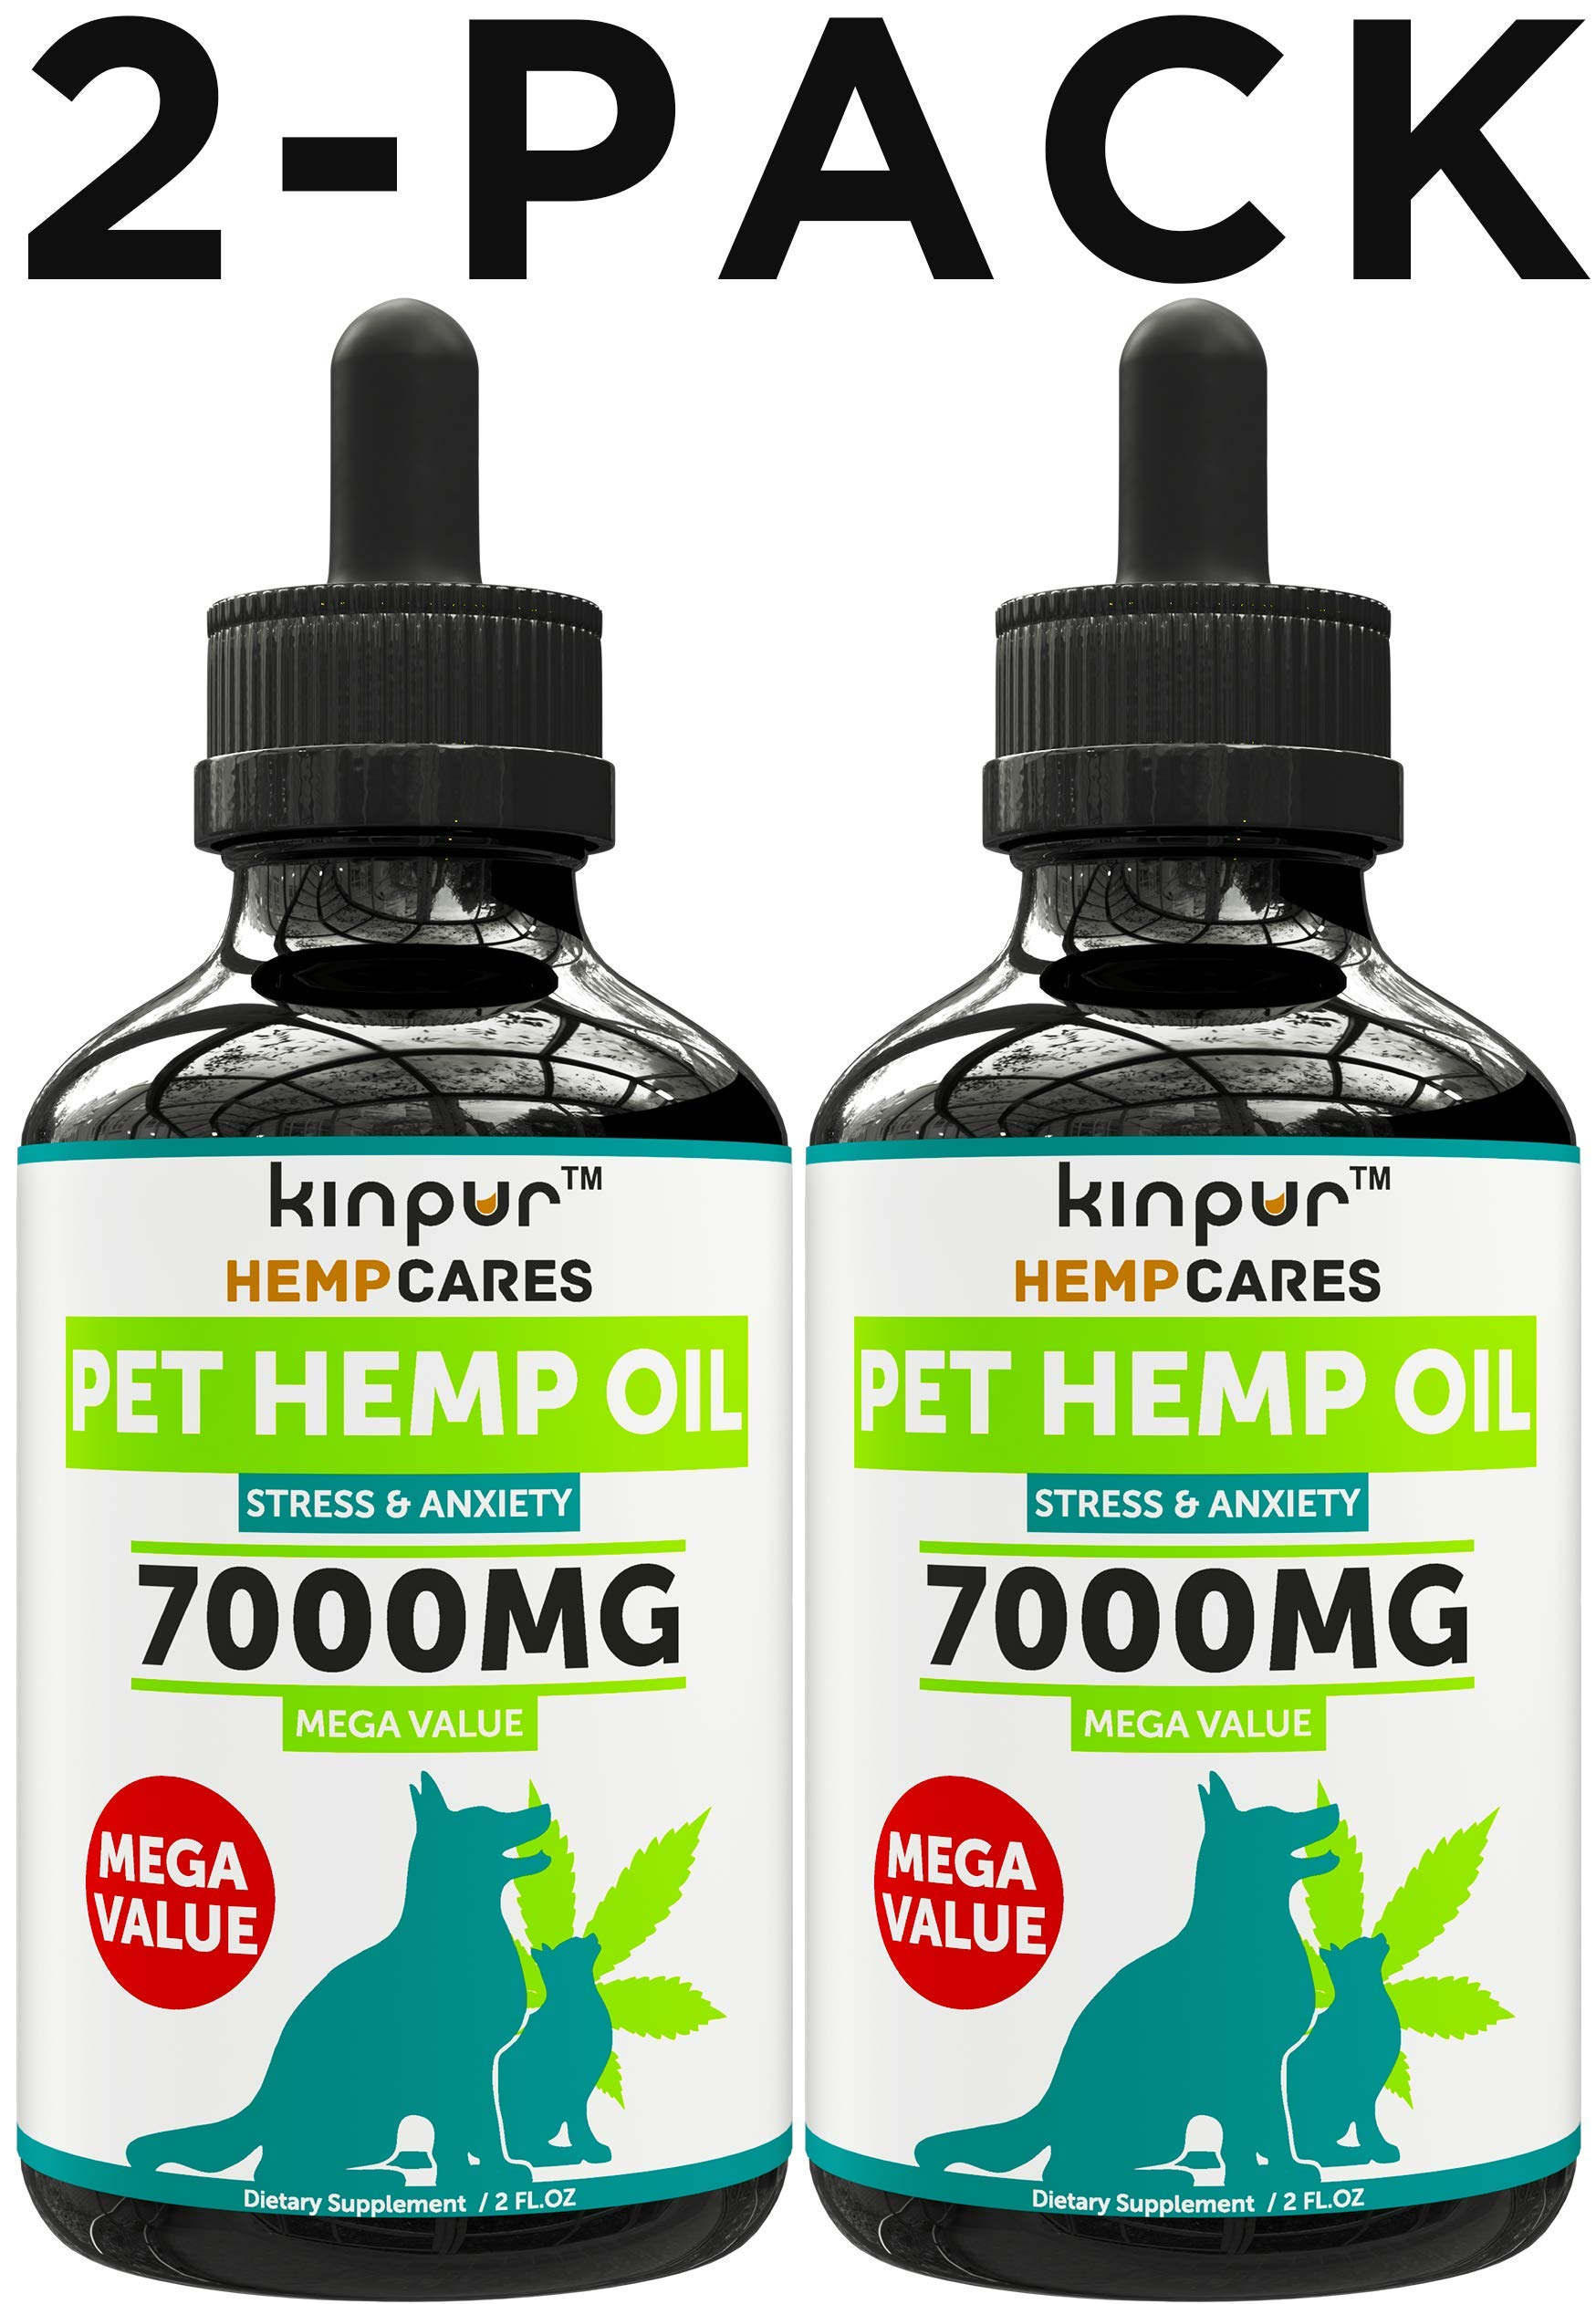 Kinpur (2 PACK | 7000MG) Hemp Oil for Dogs & Cats - Anxiety Relief for Dogs & Cats - Pet Hemp Oil - Supports Hip & Joint Health - Made in USA - Natural Relief for Pain - Omega 3, 6 & 9 by Kinpur